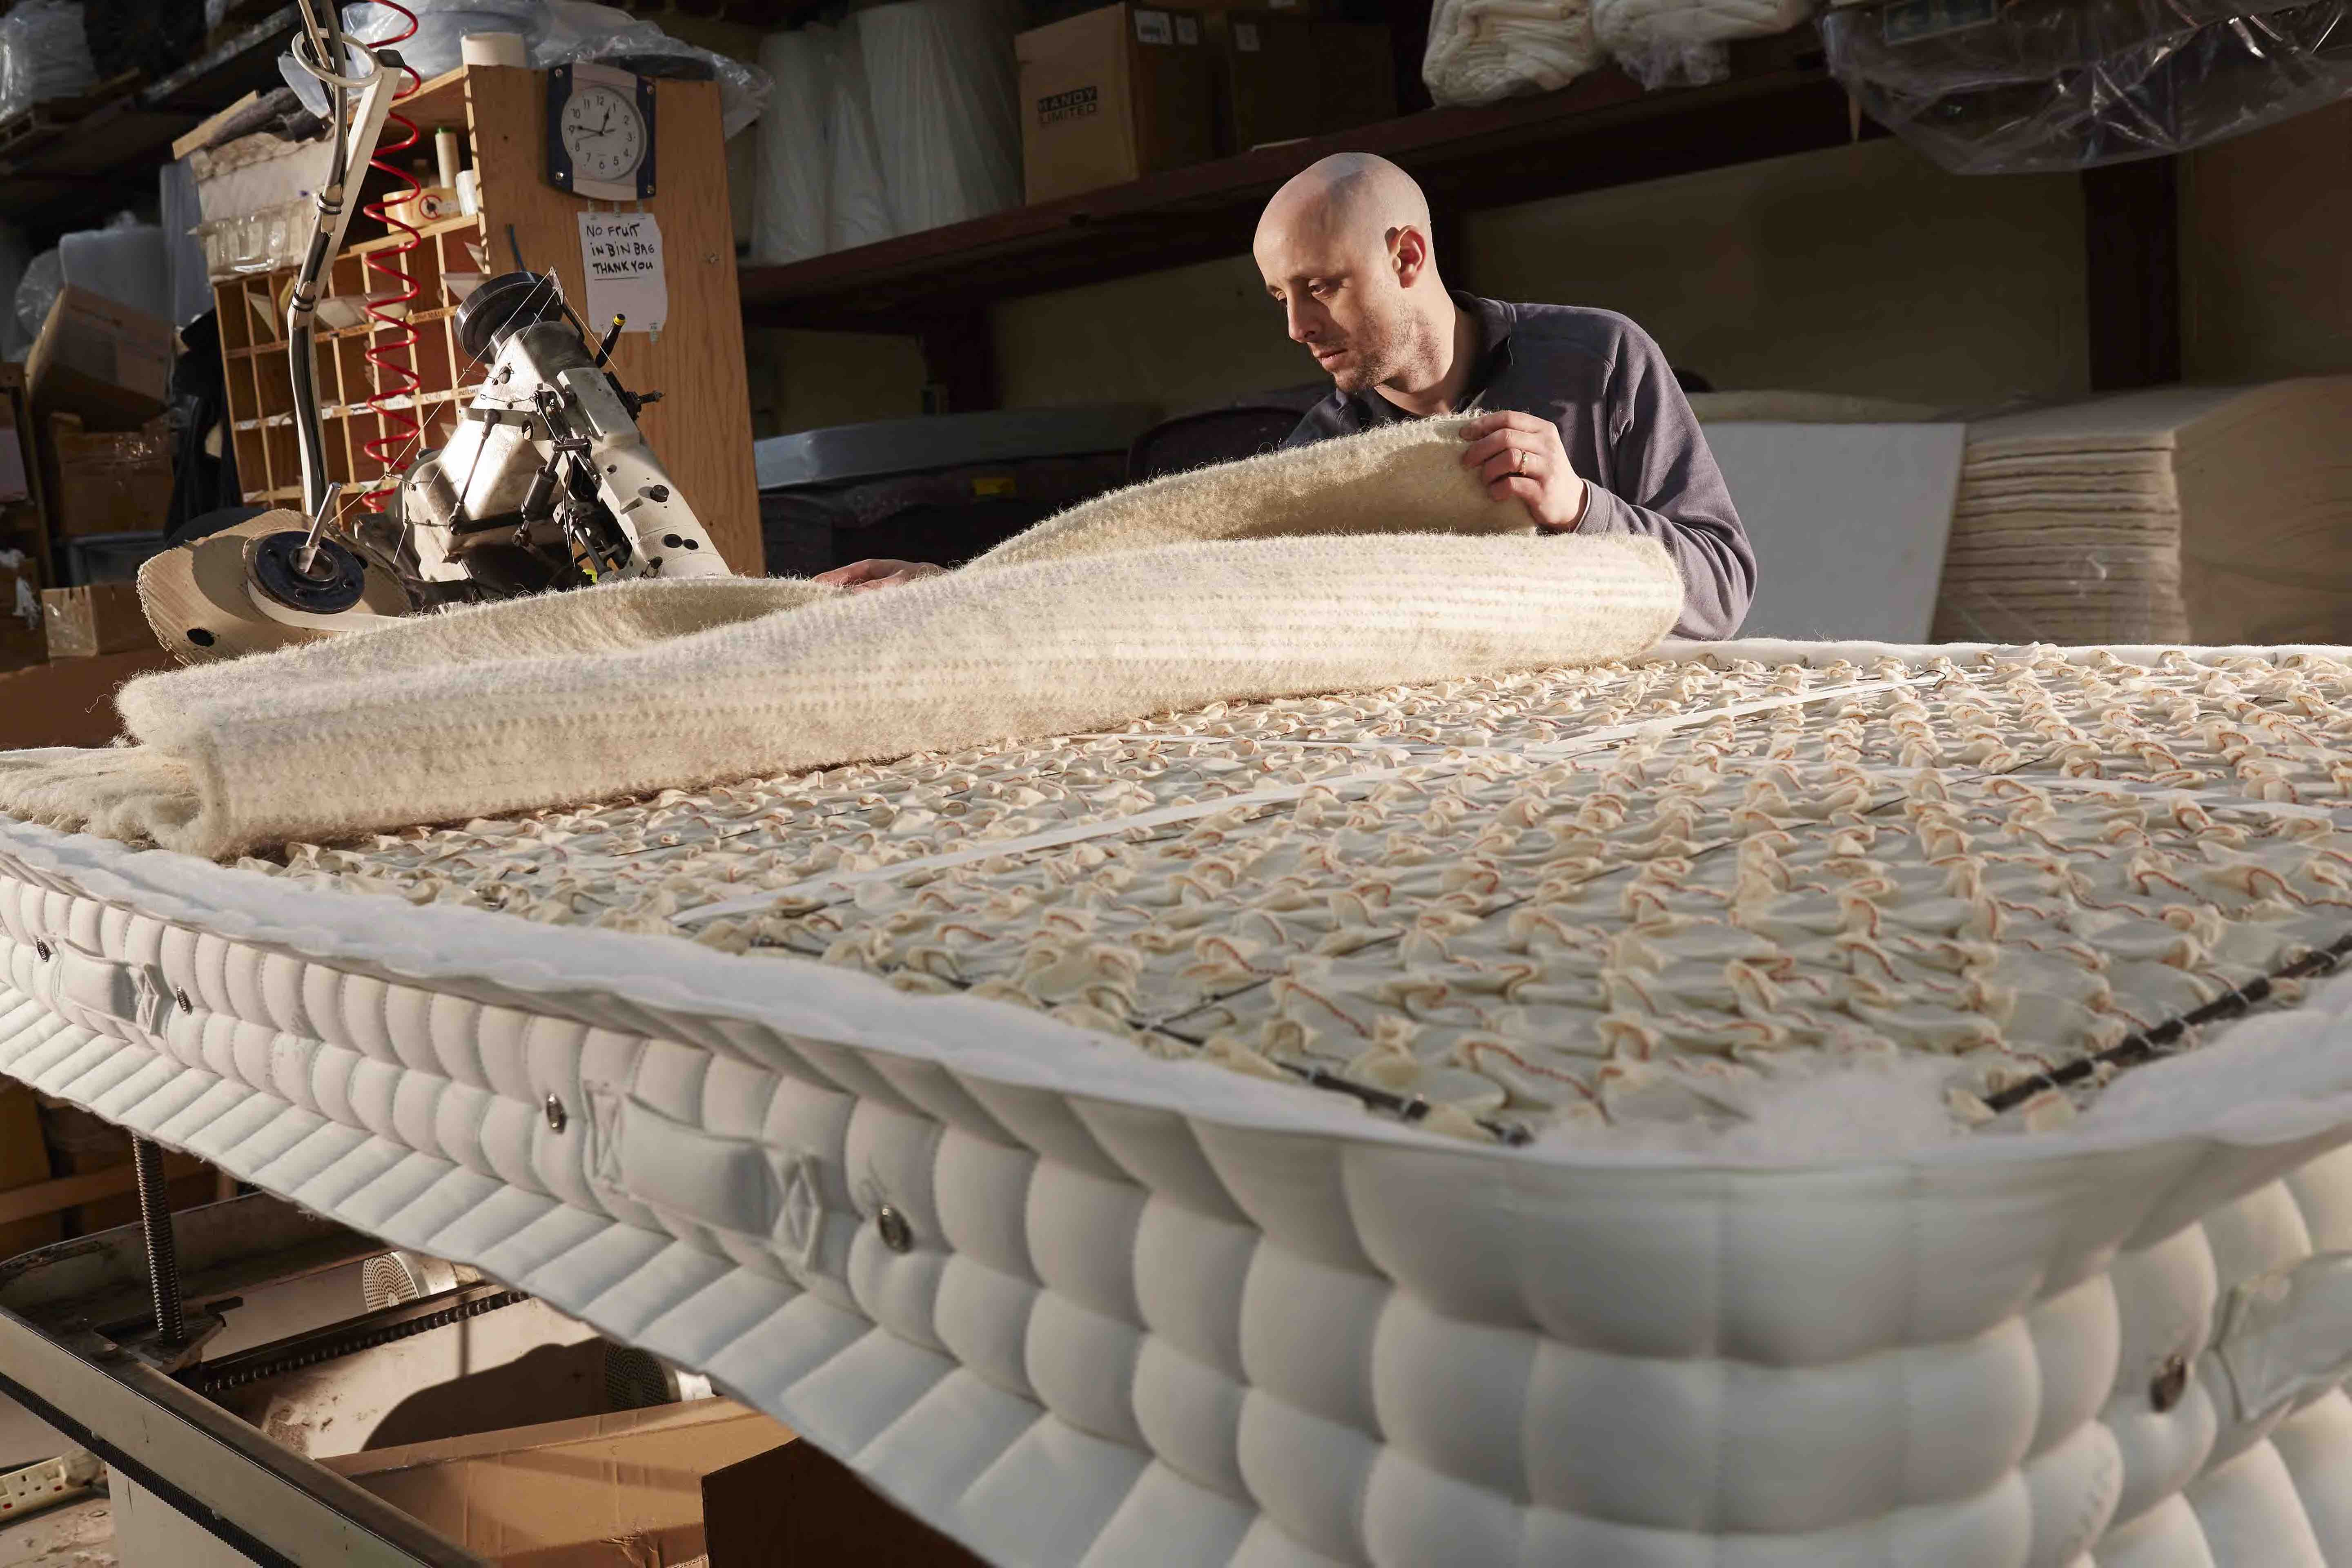 Upholstery layers on top of the spring unit provide the 'comfort' feel to a mattress starting with the insulator